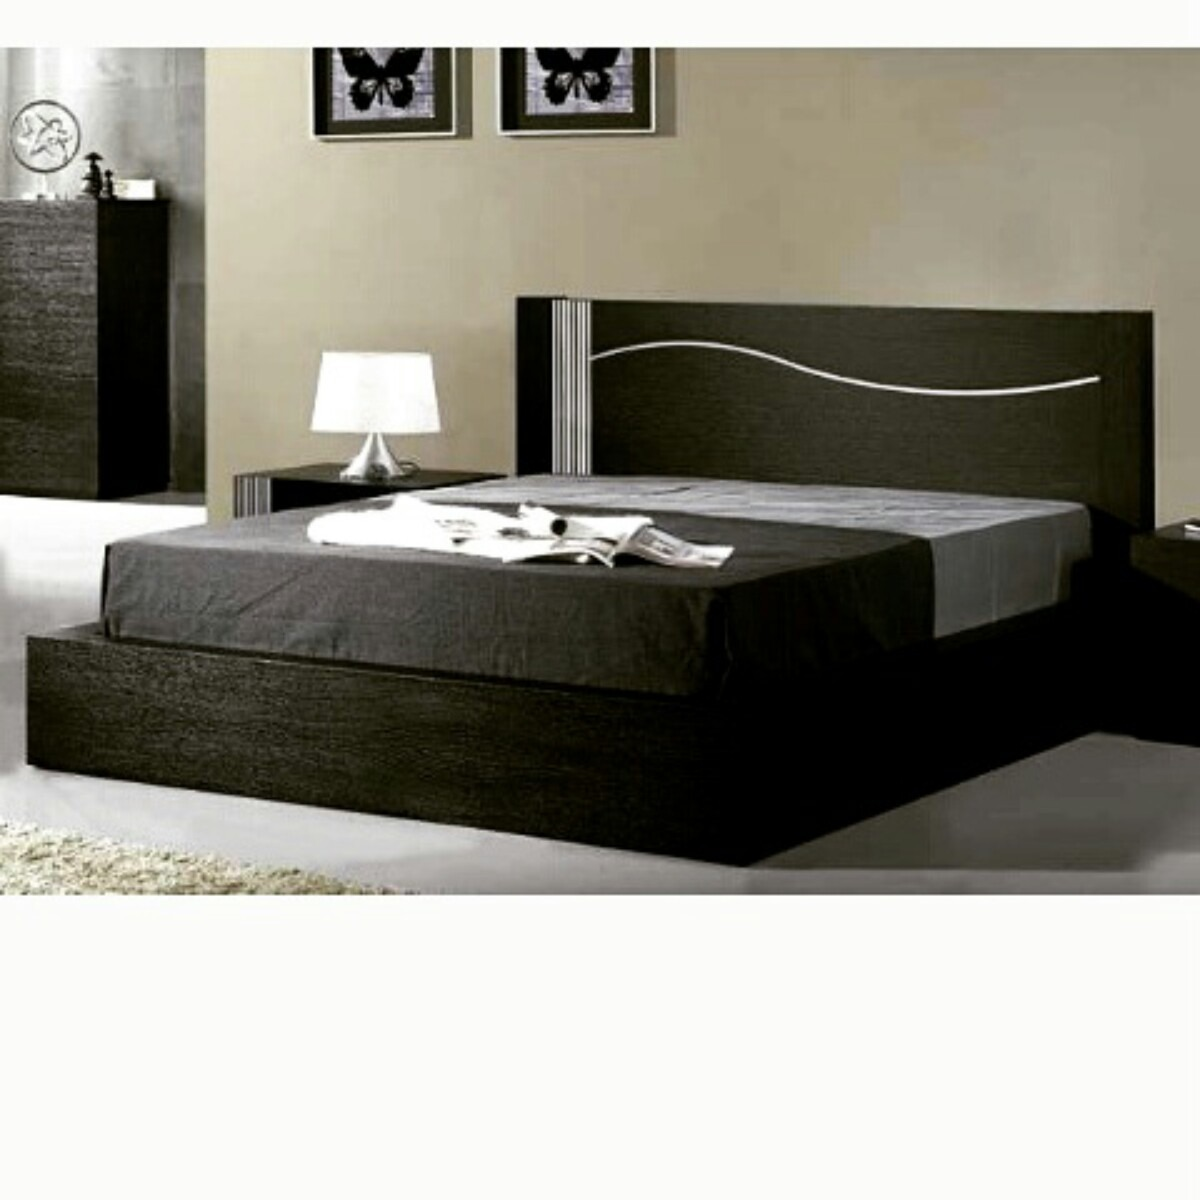 Camas matrimoniales queen y king size bs en for Cama queen size or king size